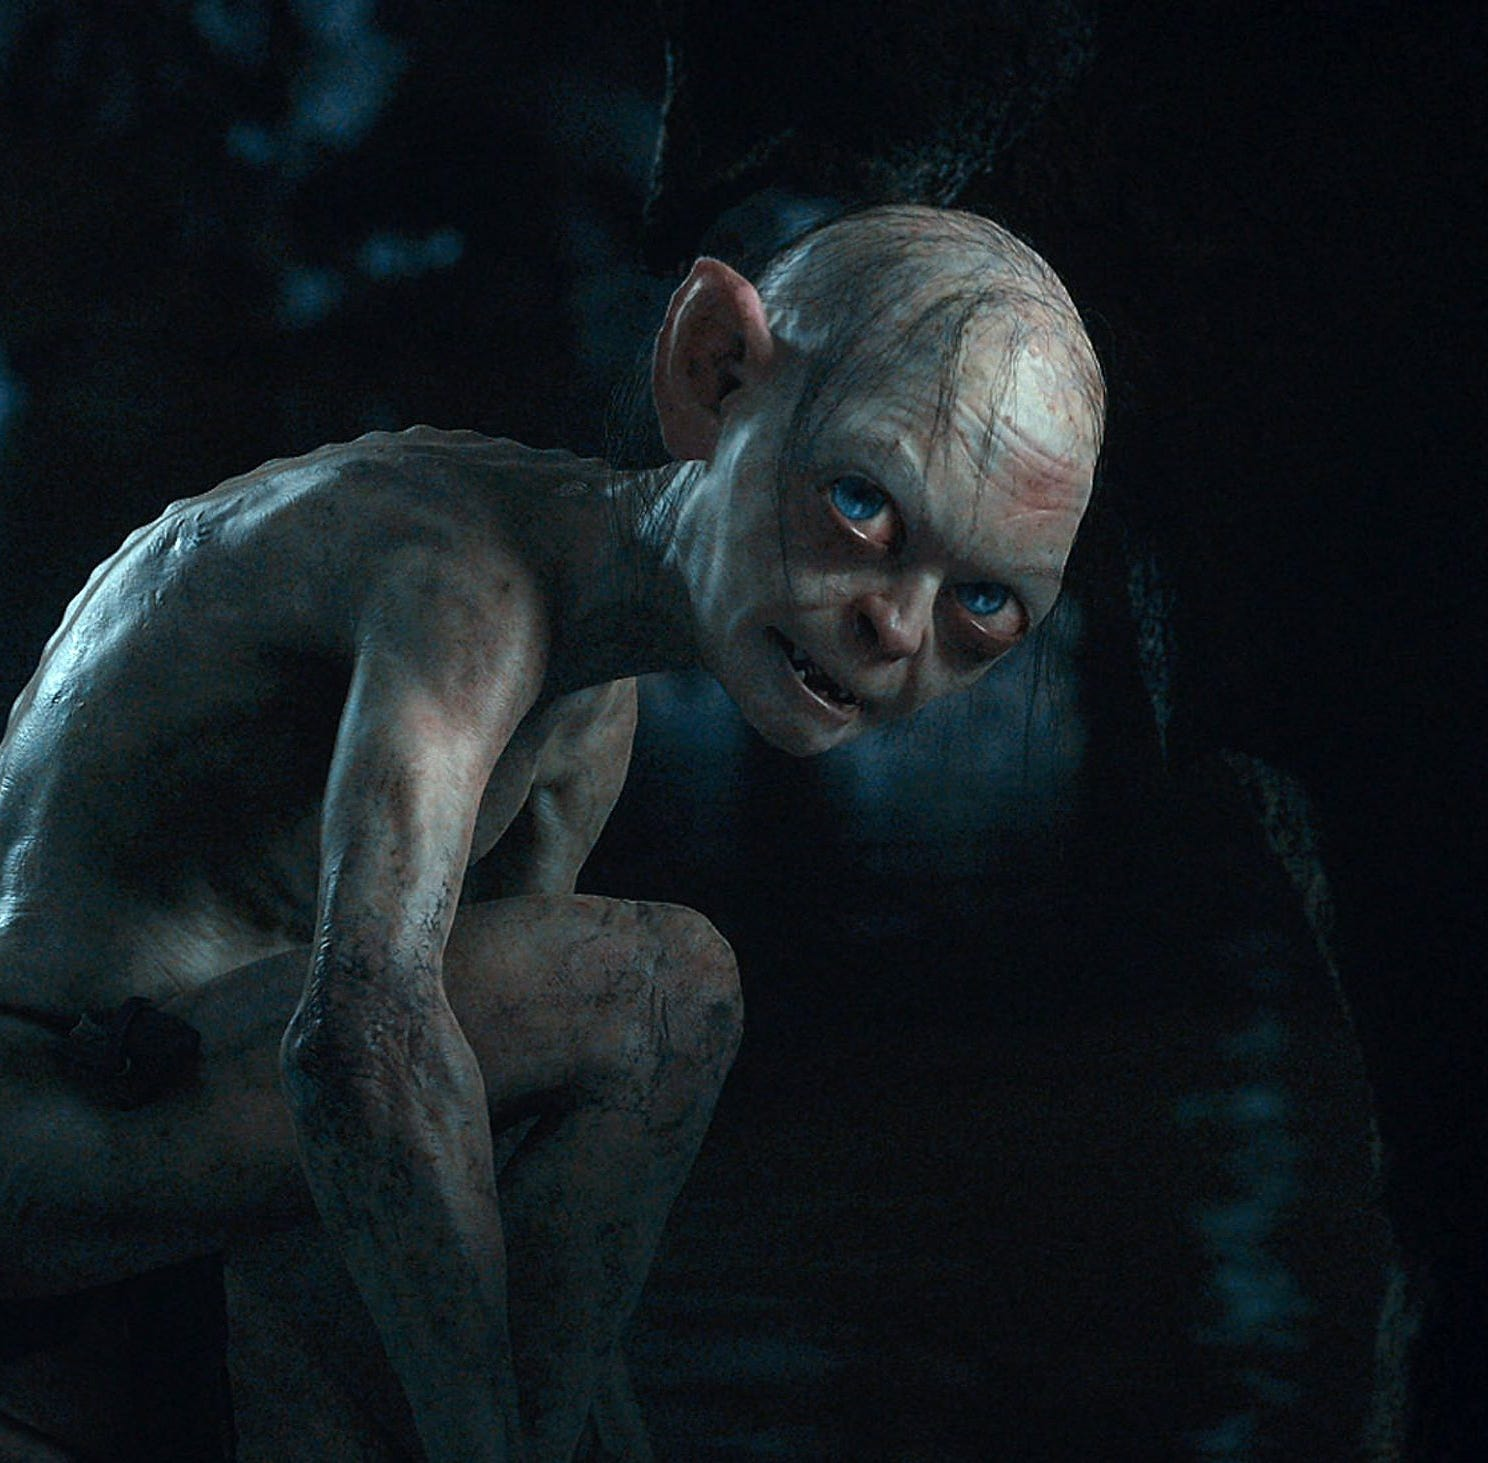 Andy Serkis got low as Gollum in 'The Hobbit: An Unexpected Journey.'